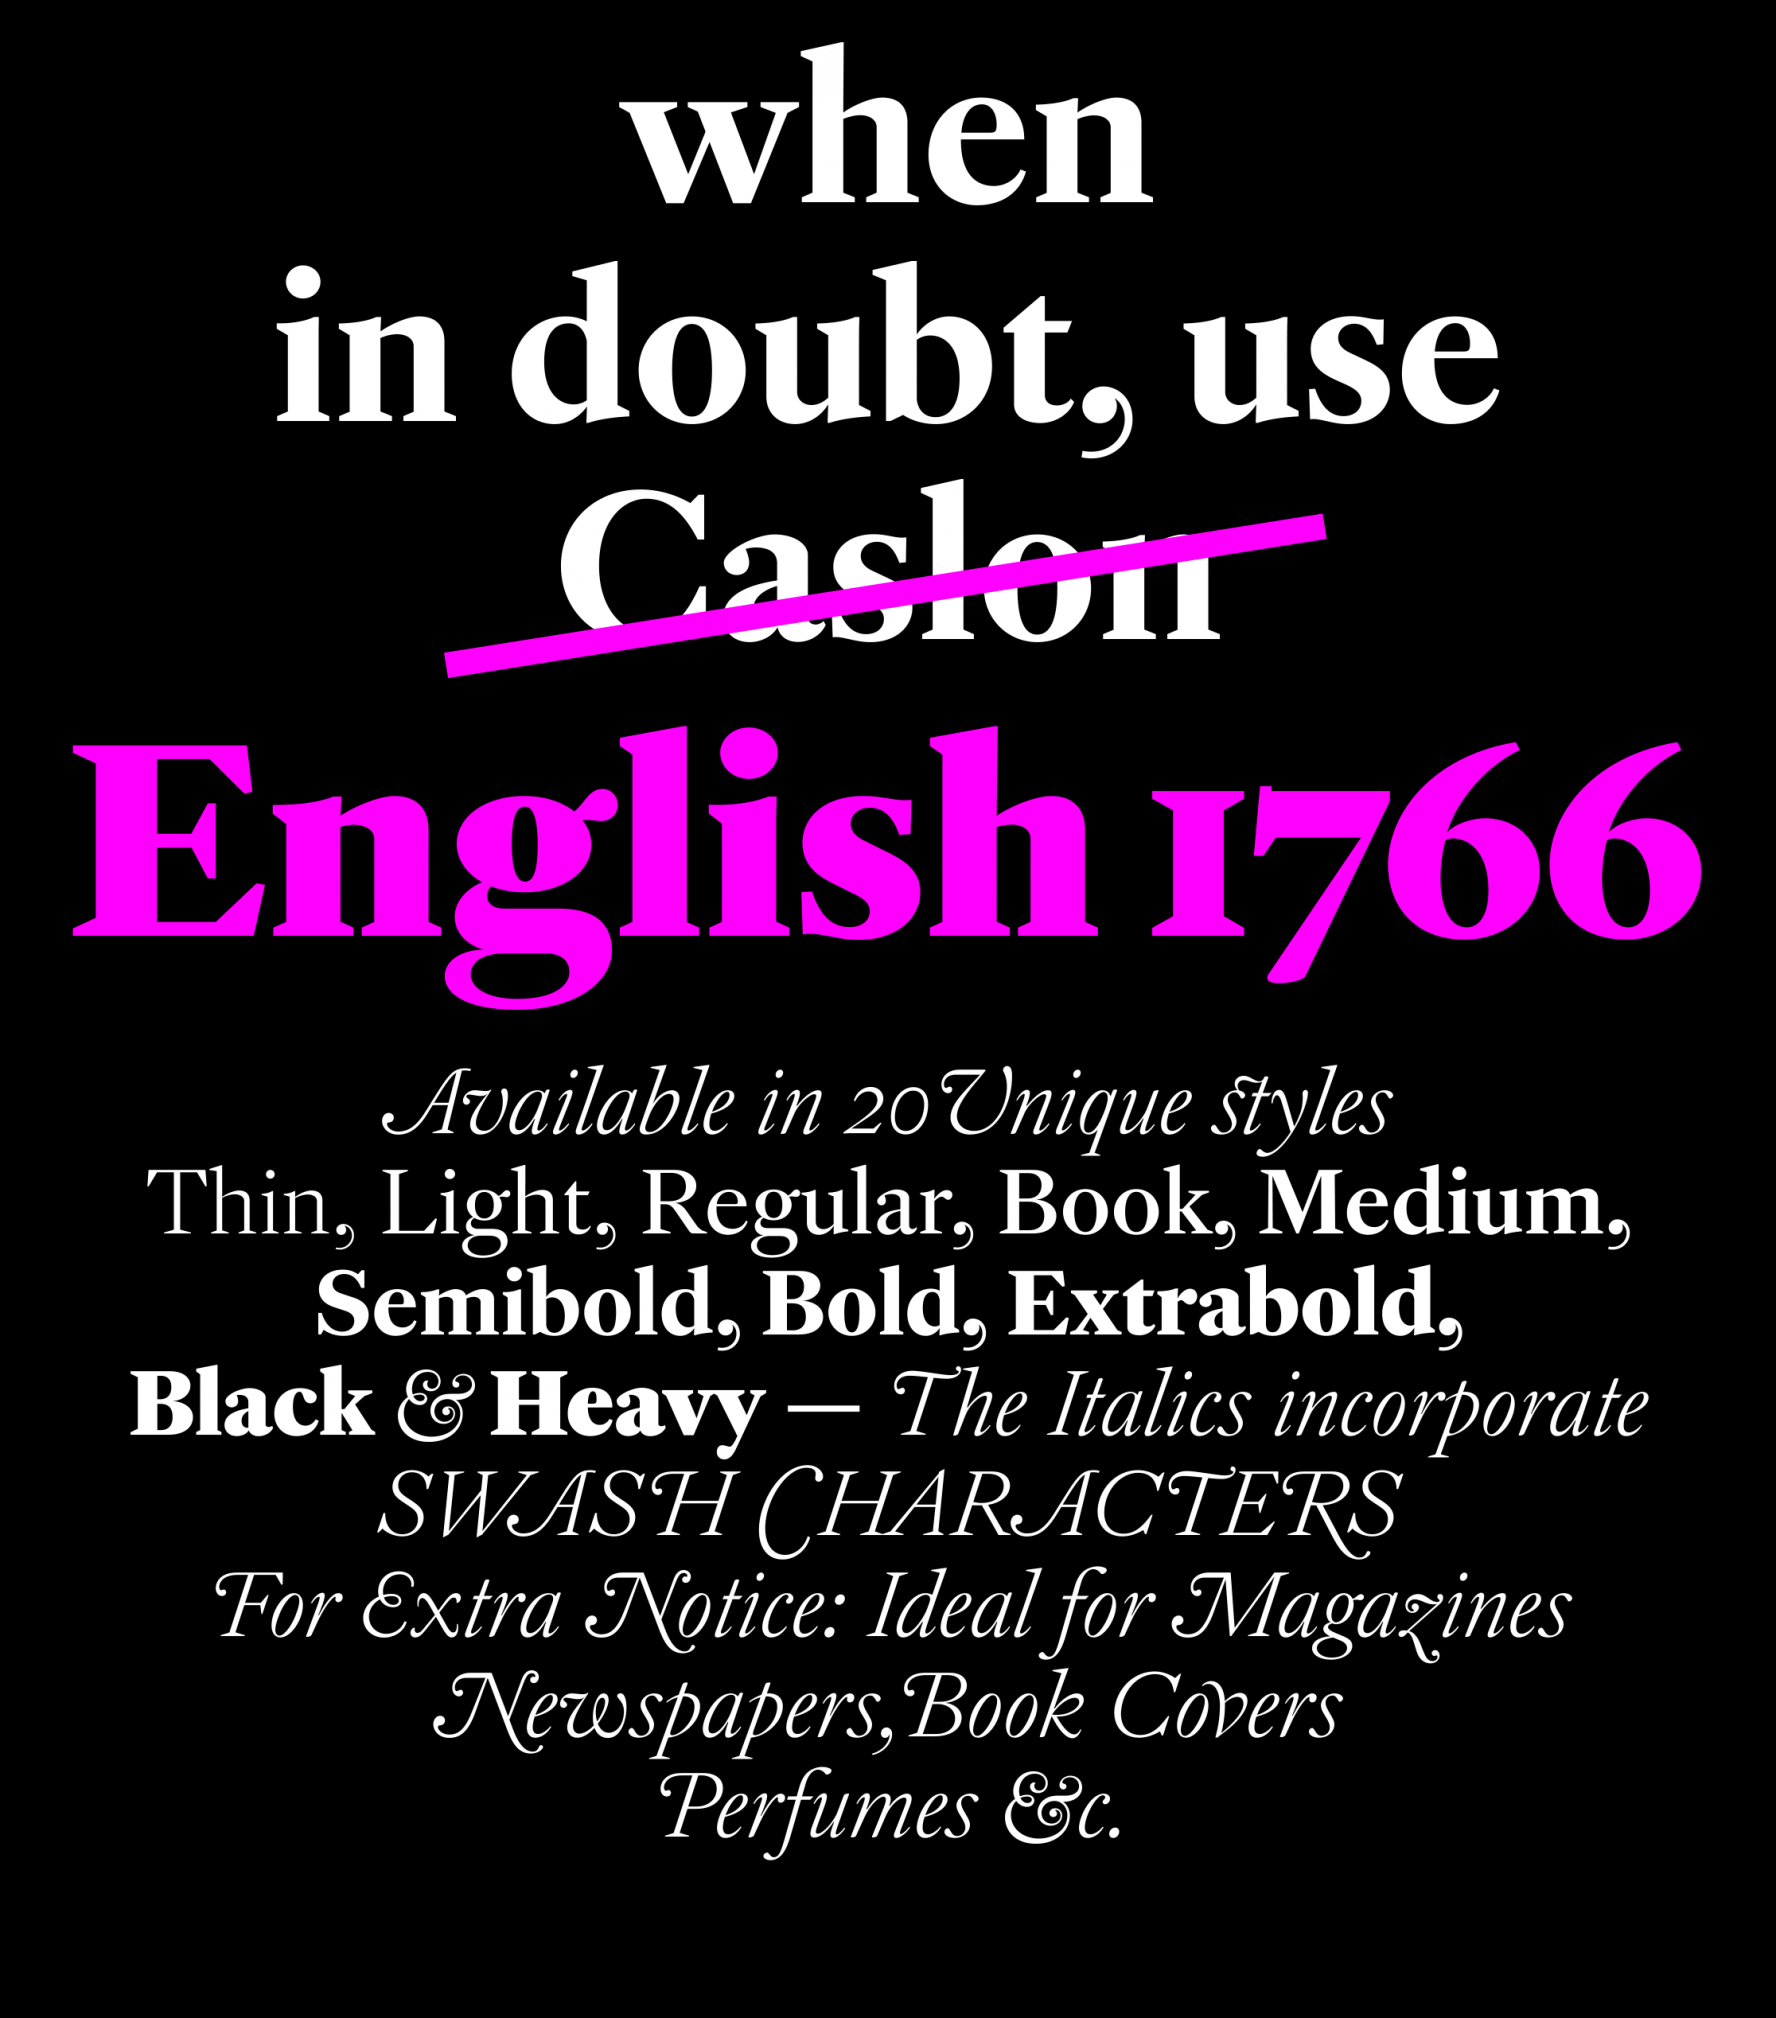 English 1766 sample